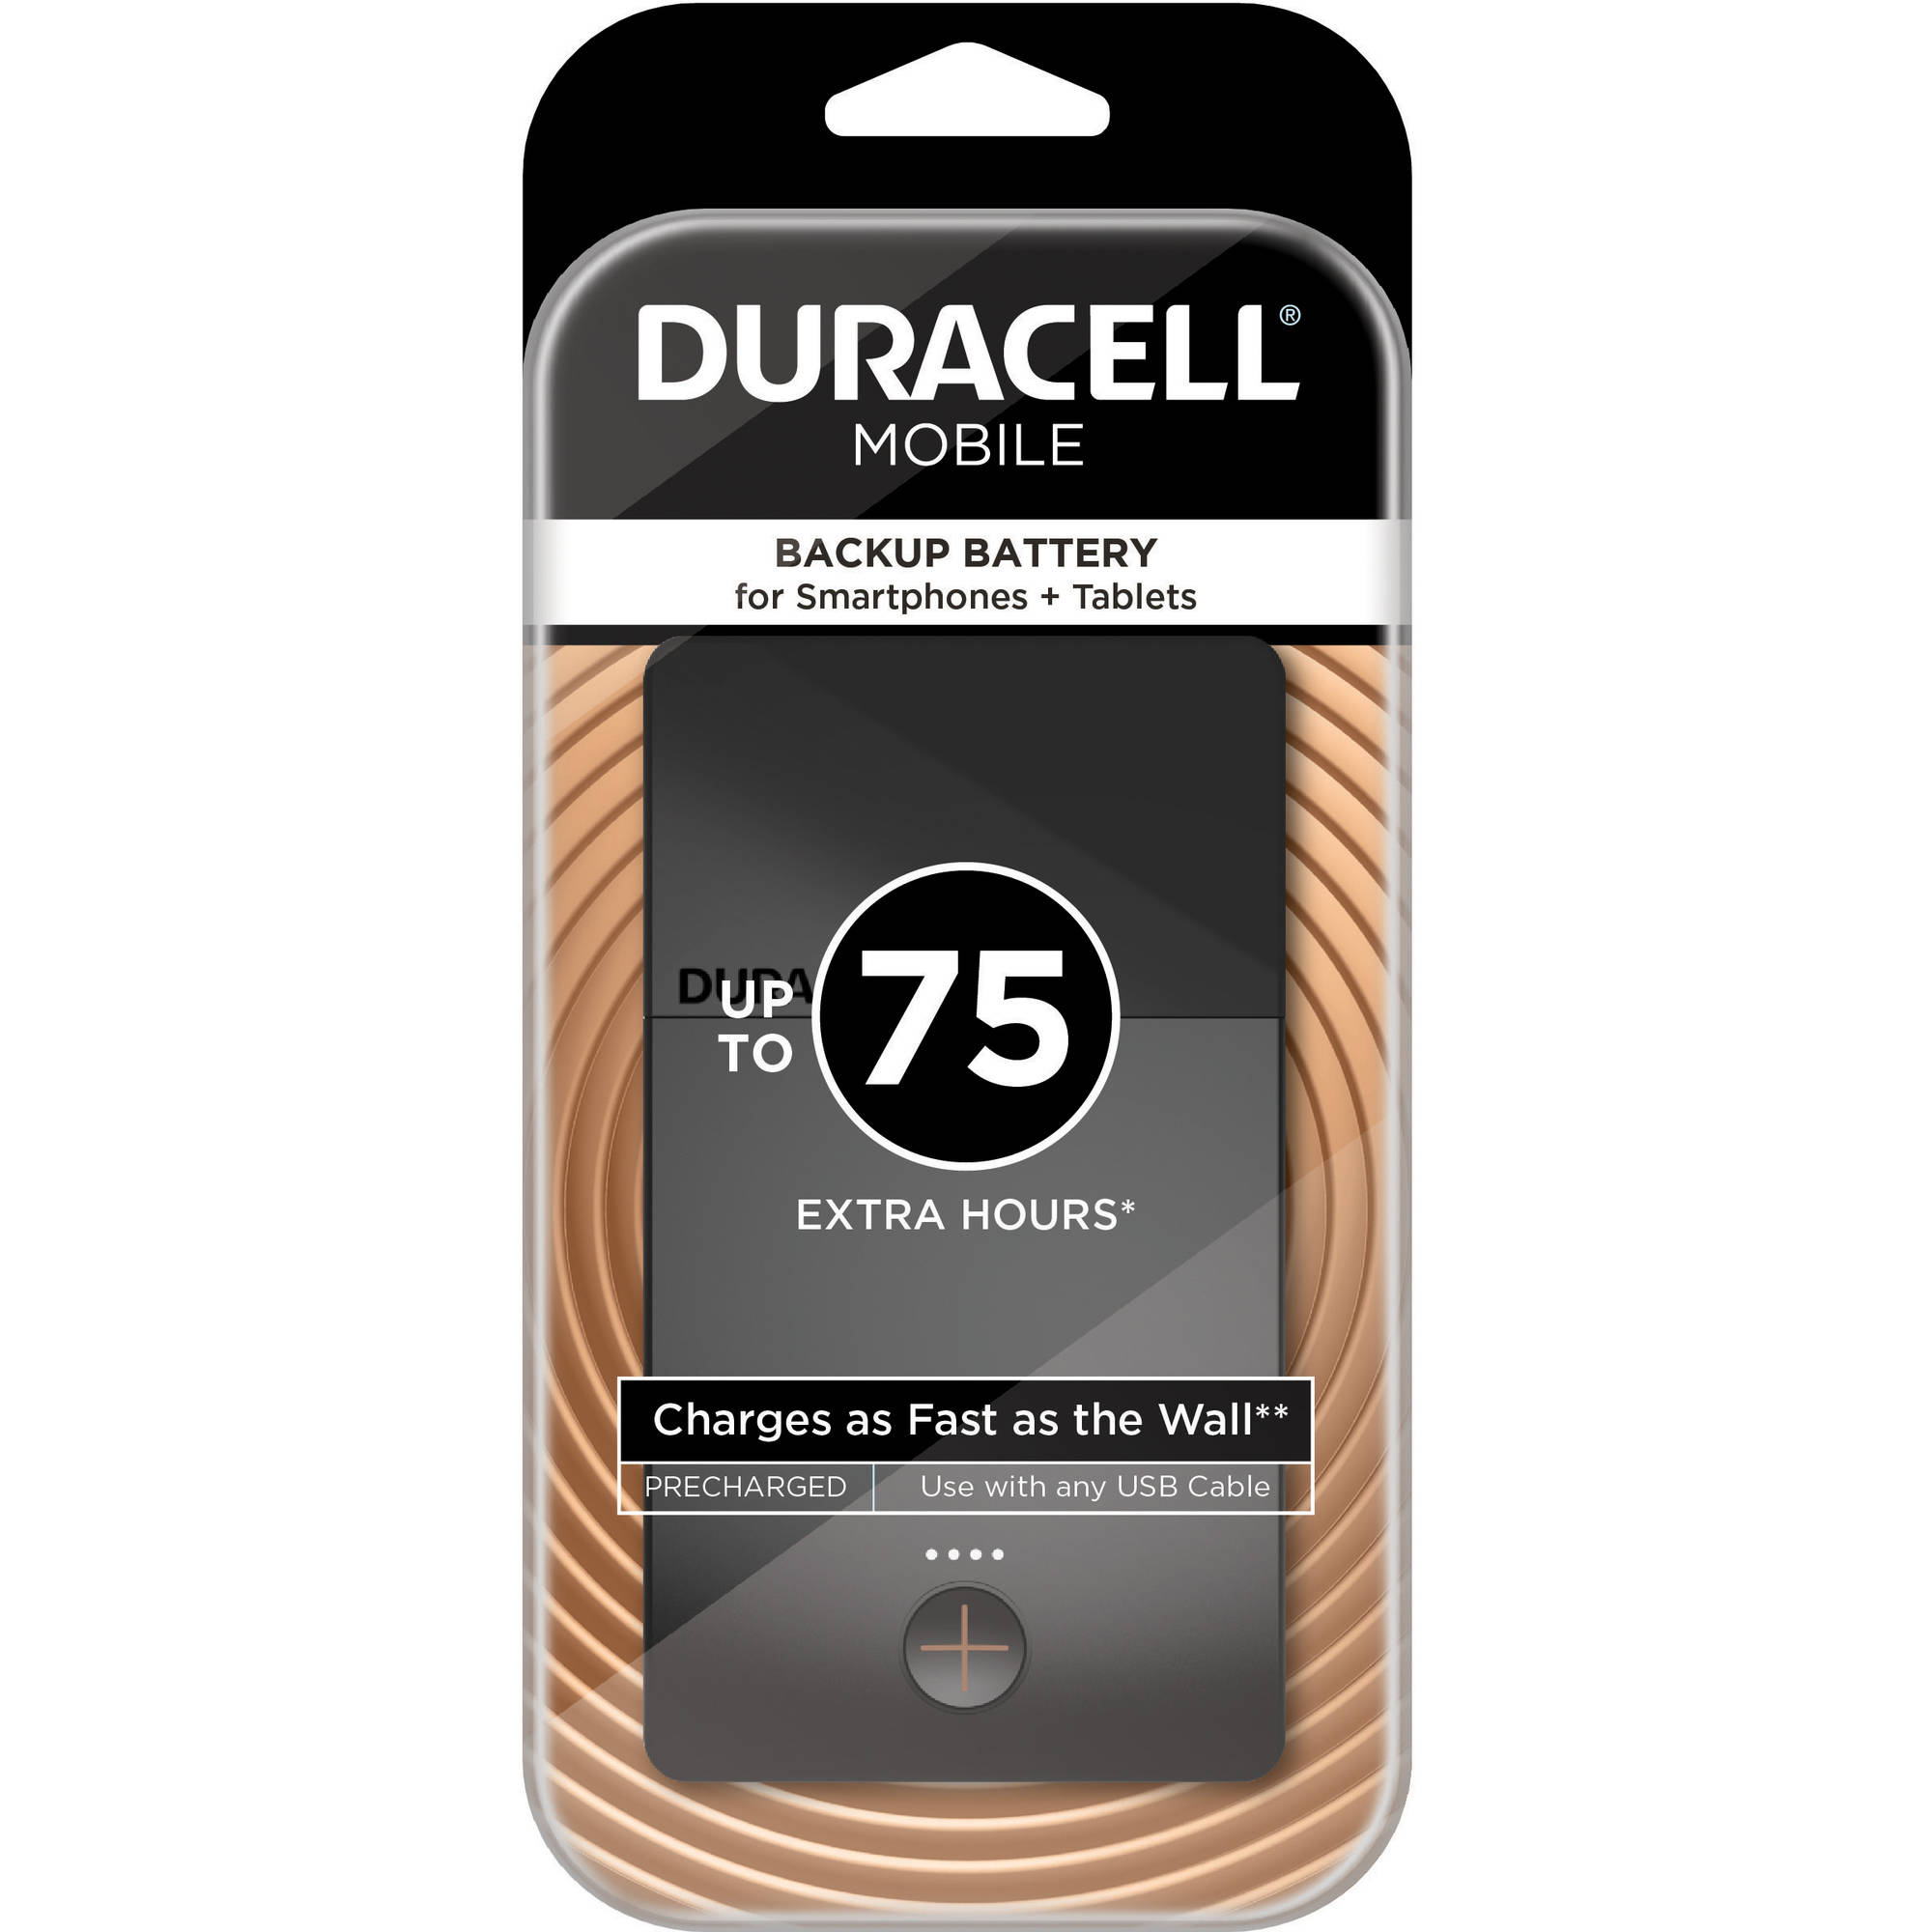 Duracell Mobile PowerPack Plus 10200 mAh Universal Backup Battery for Smartphones, Tablets and